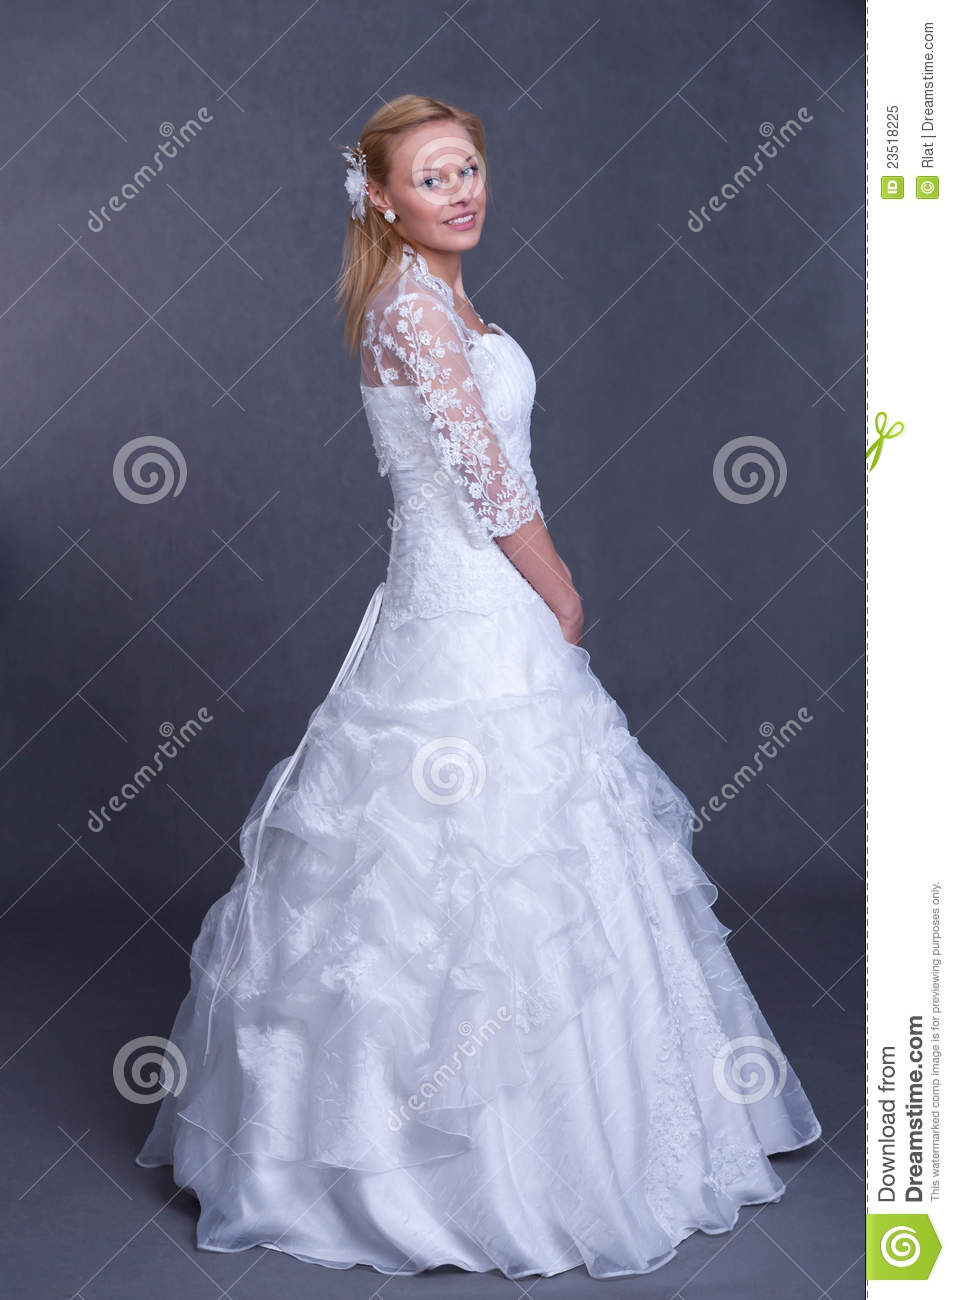 Young bride in wedding dress royalty free stock photo for Wedding dresses for young brides